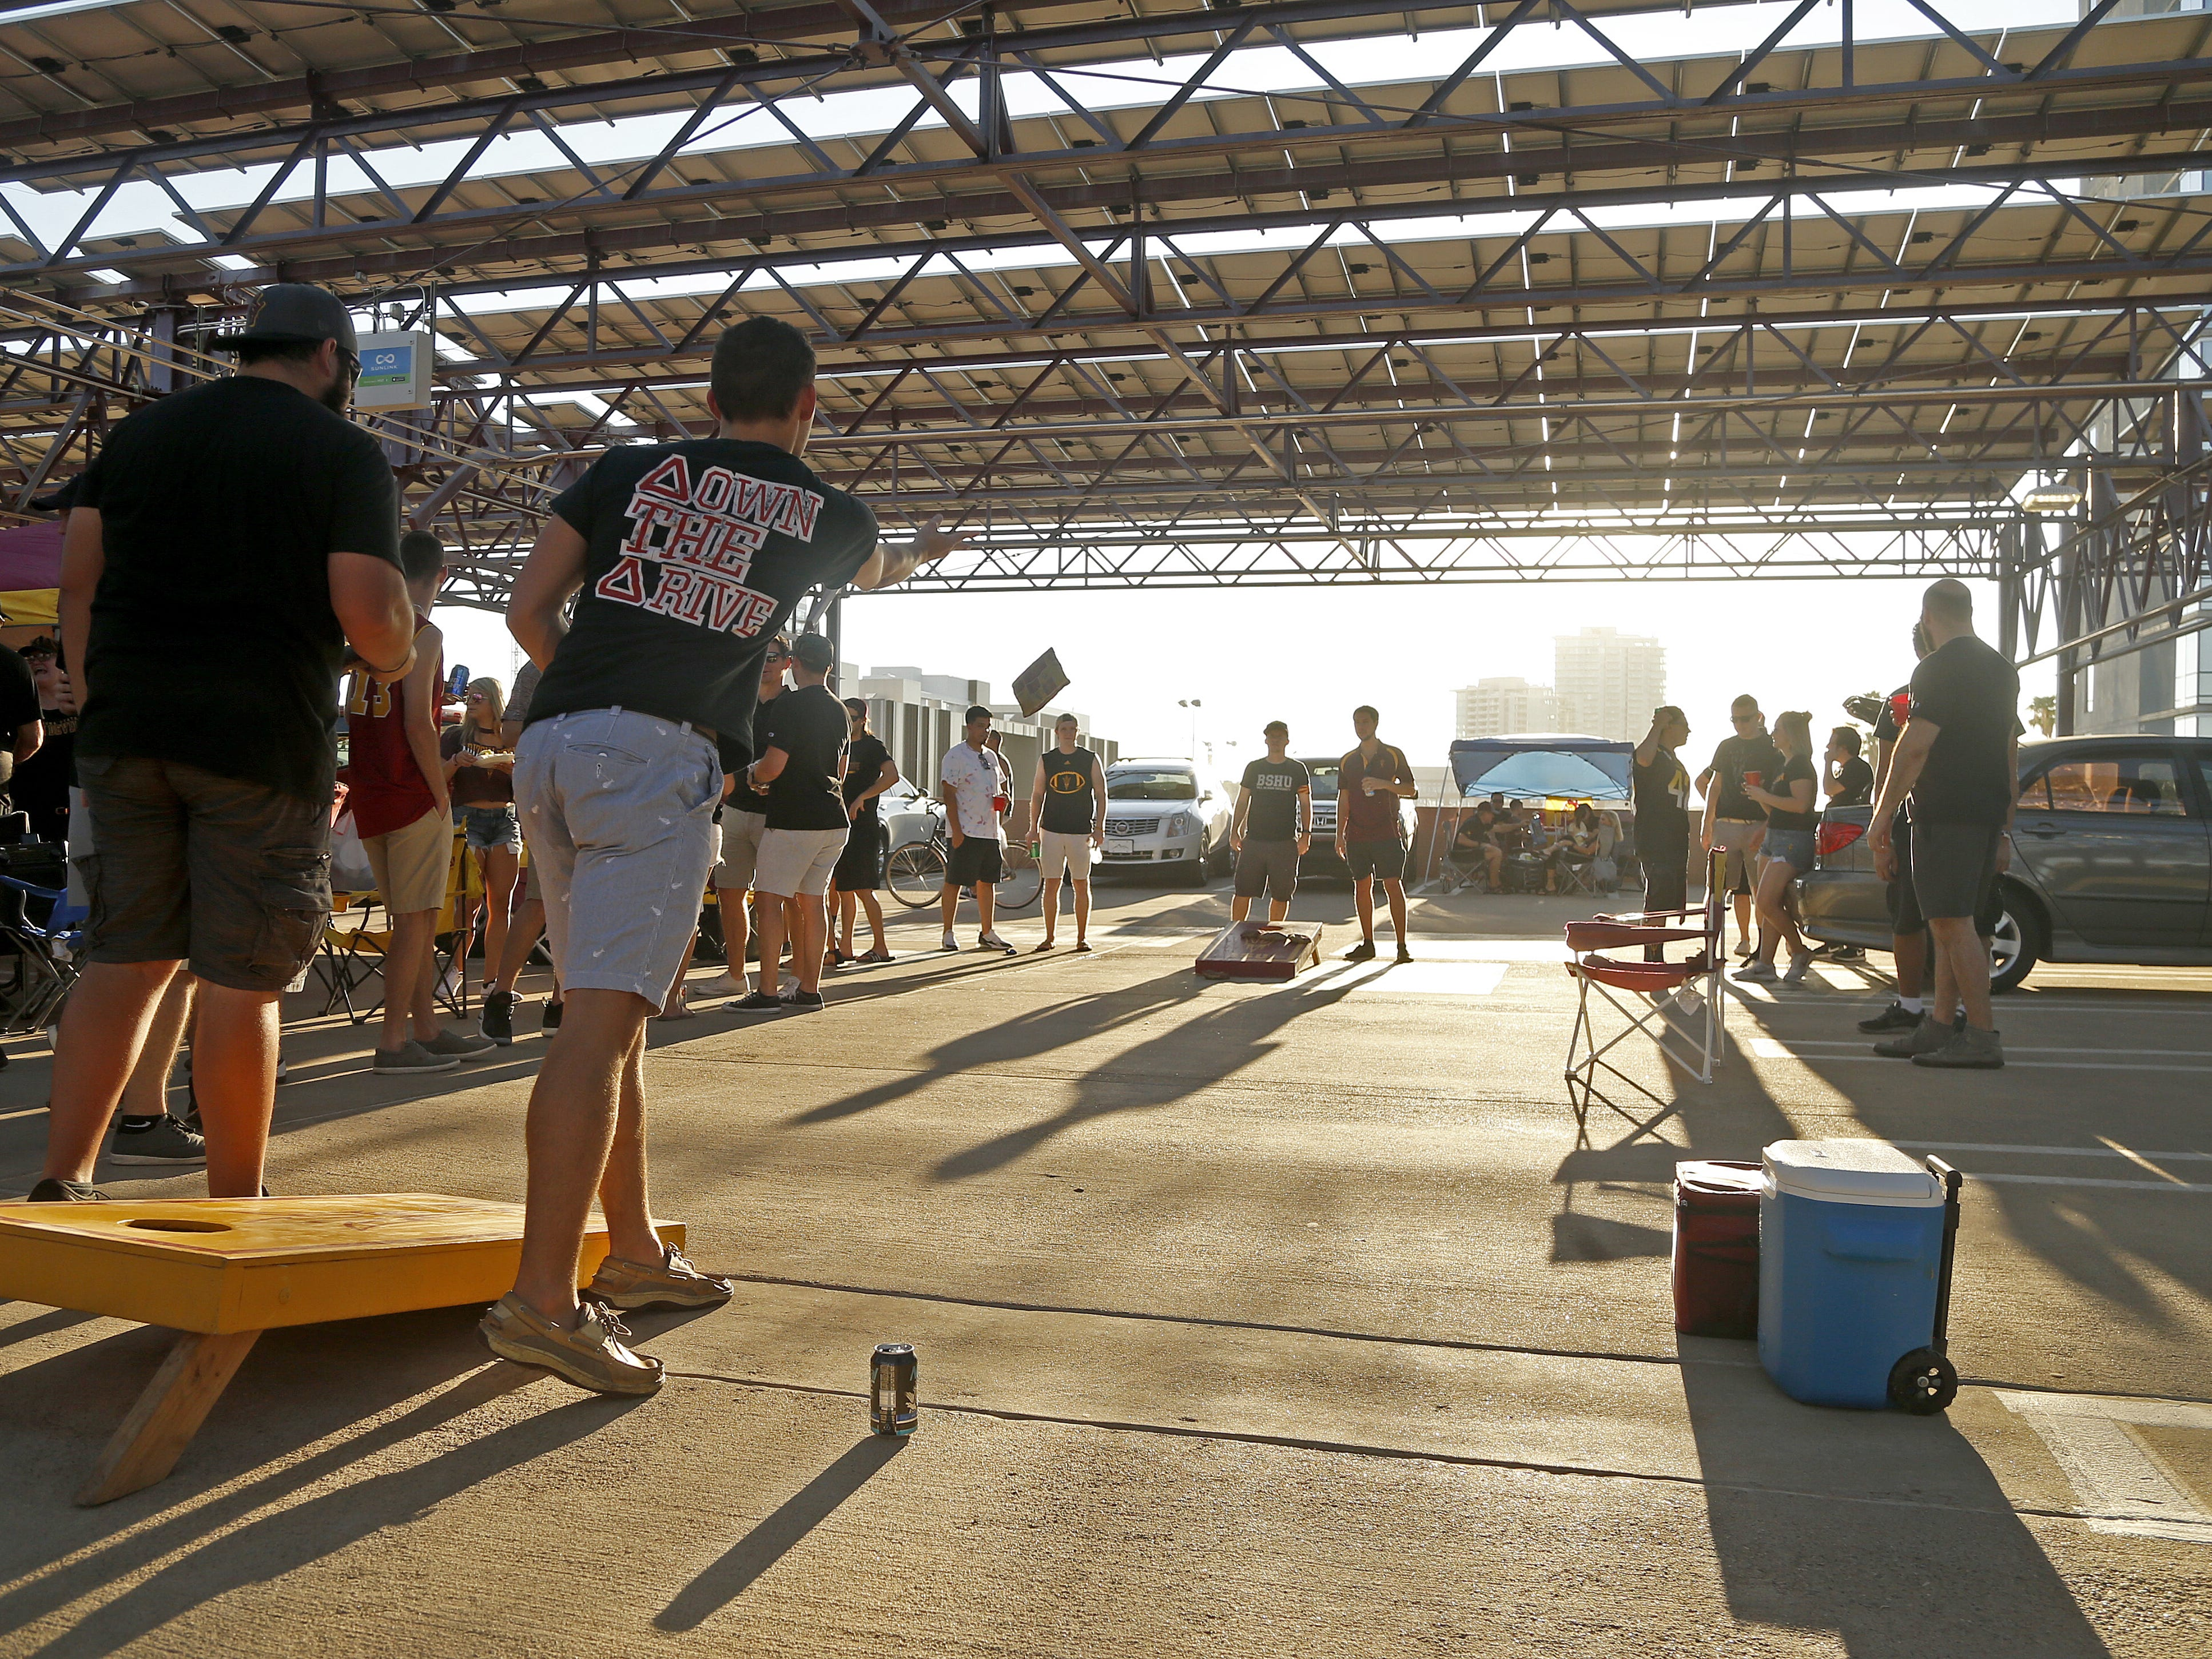 ASU students play bags on the top of a parking garage before an ASU game against Michigan State at Sun Devil Stadium in Tempe, Ariz. on Sept. 8, 2018.